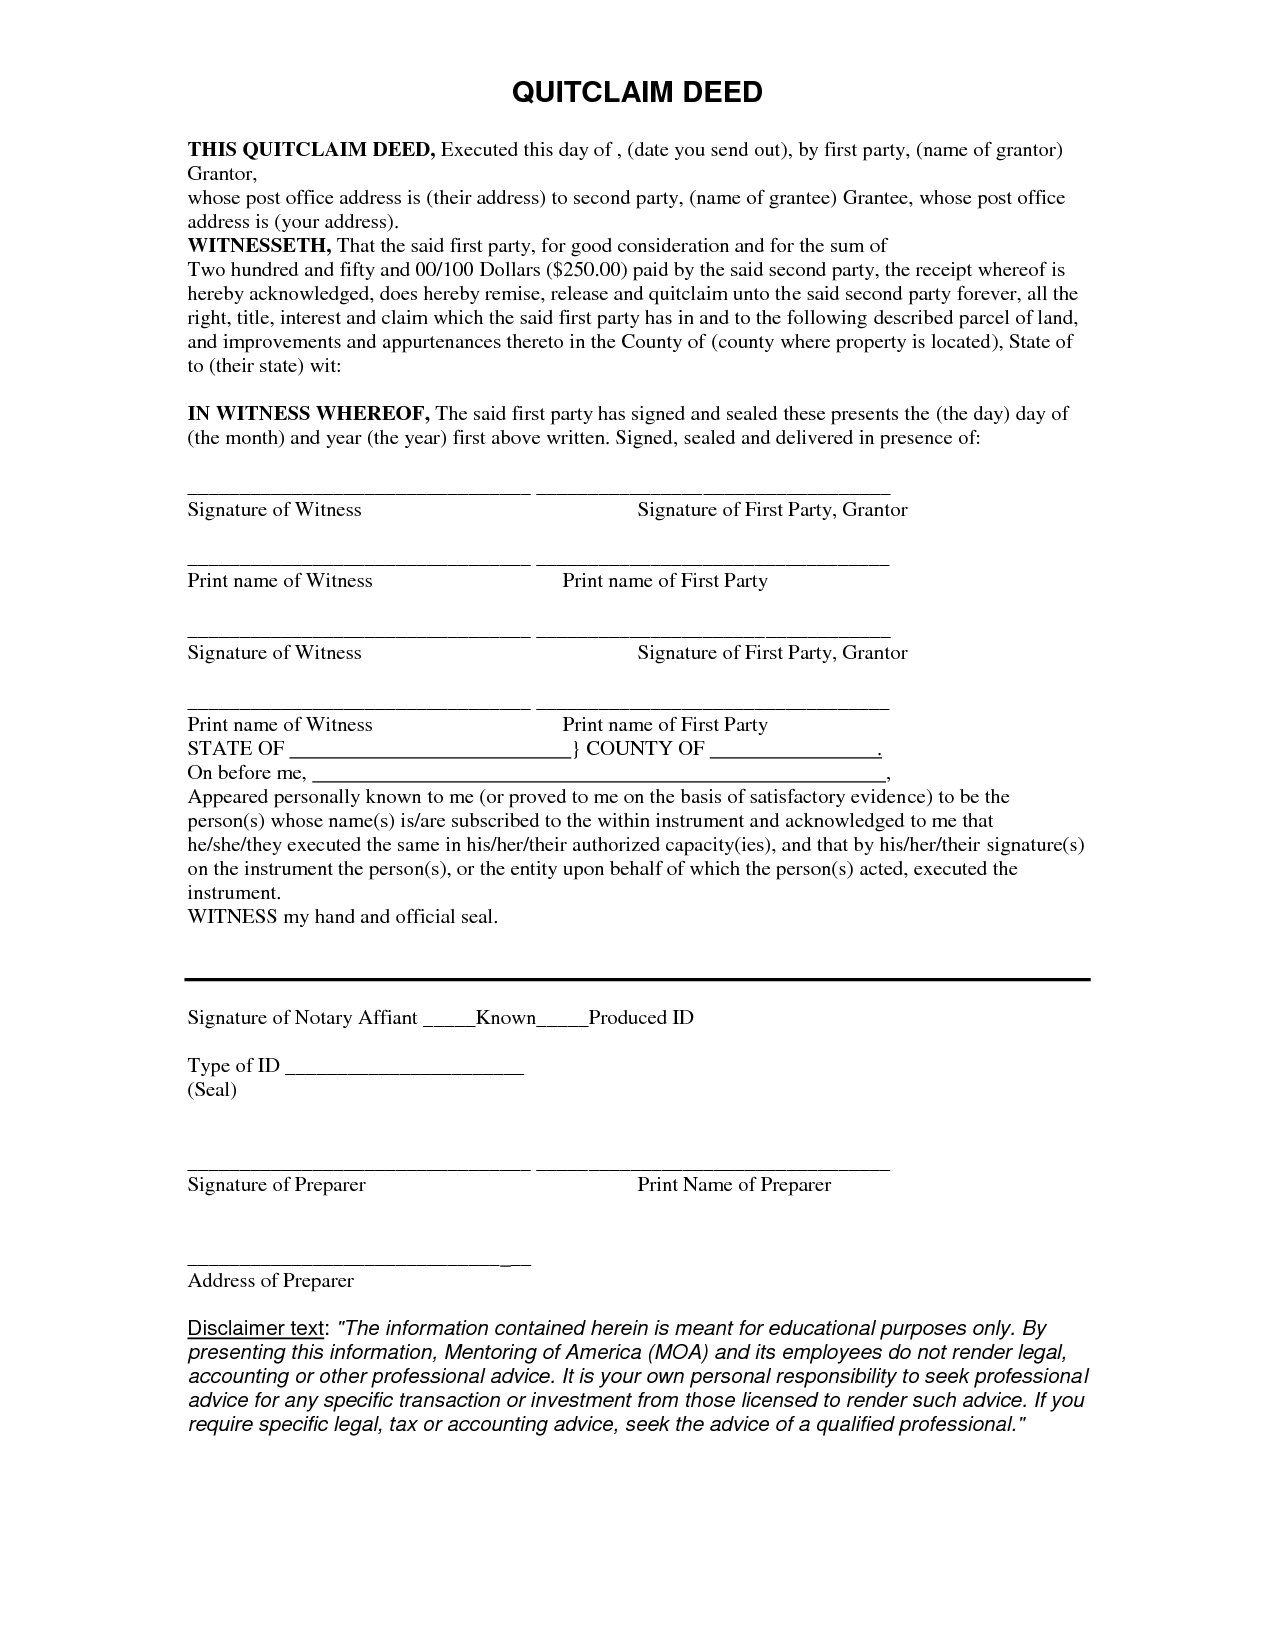 Free Quit Claim Deed Form  Quit Form  Legal Forms